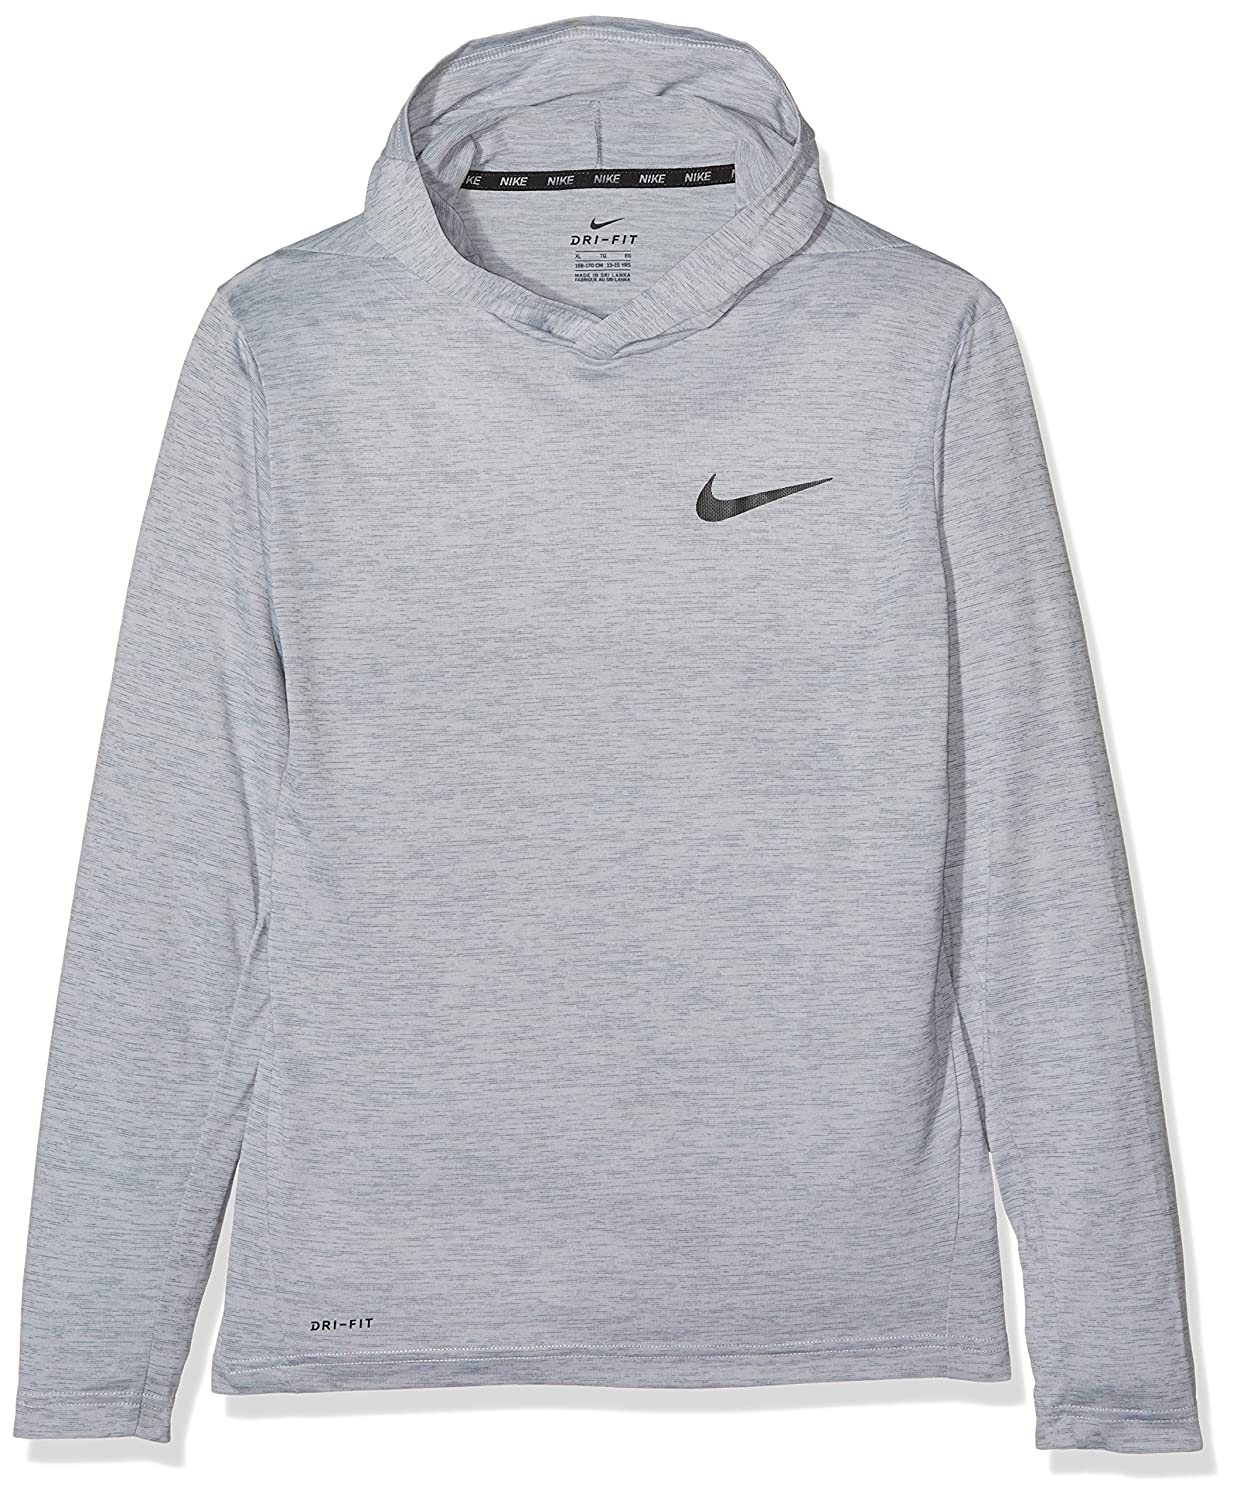 642f229c Amazon.com: Nike Big Kids' (Boys') Training Hoodie (Small, Cool  Grey/Black): Clothing